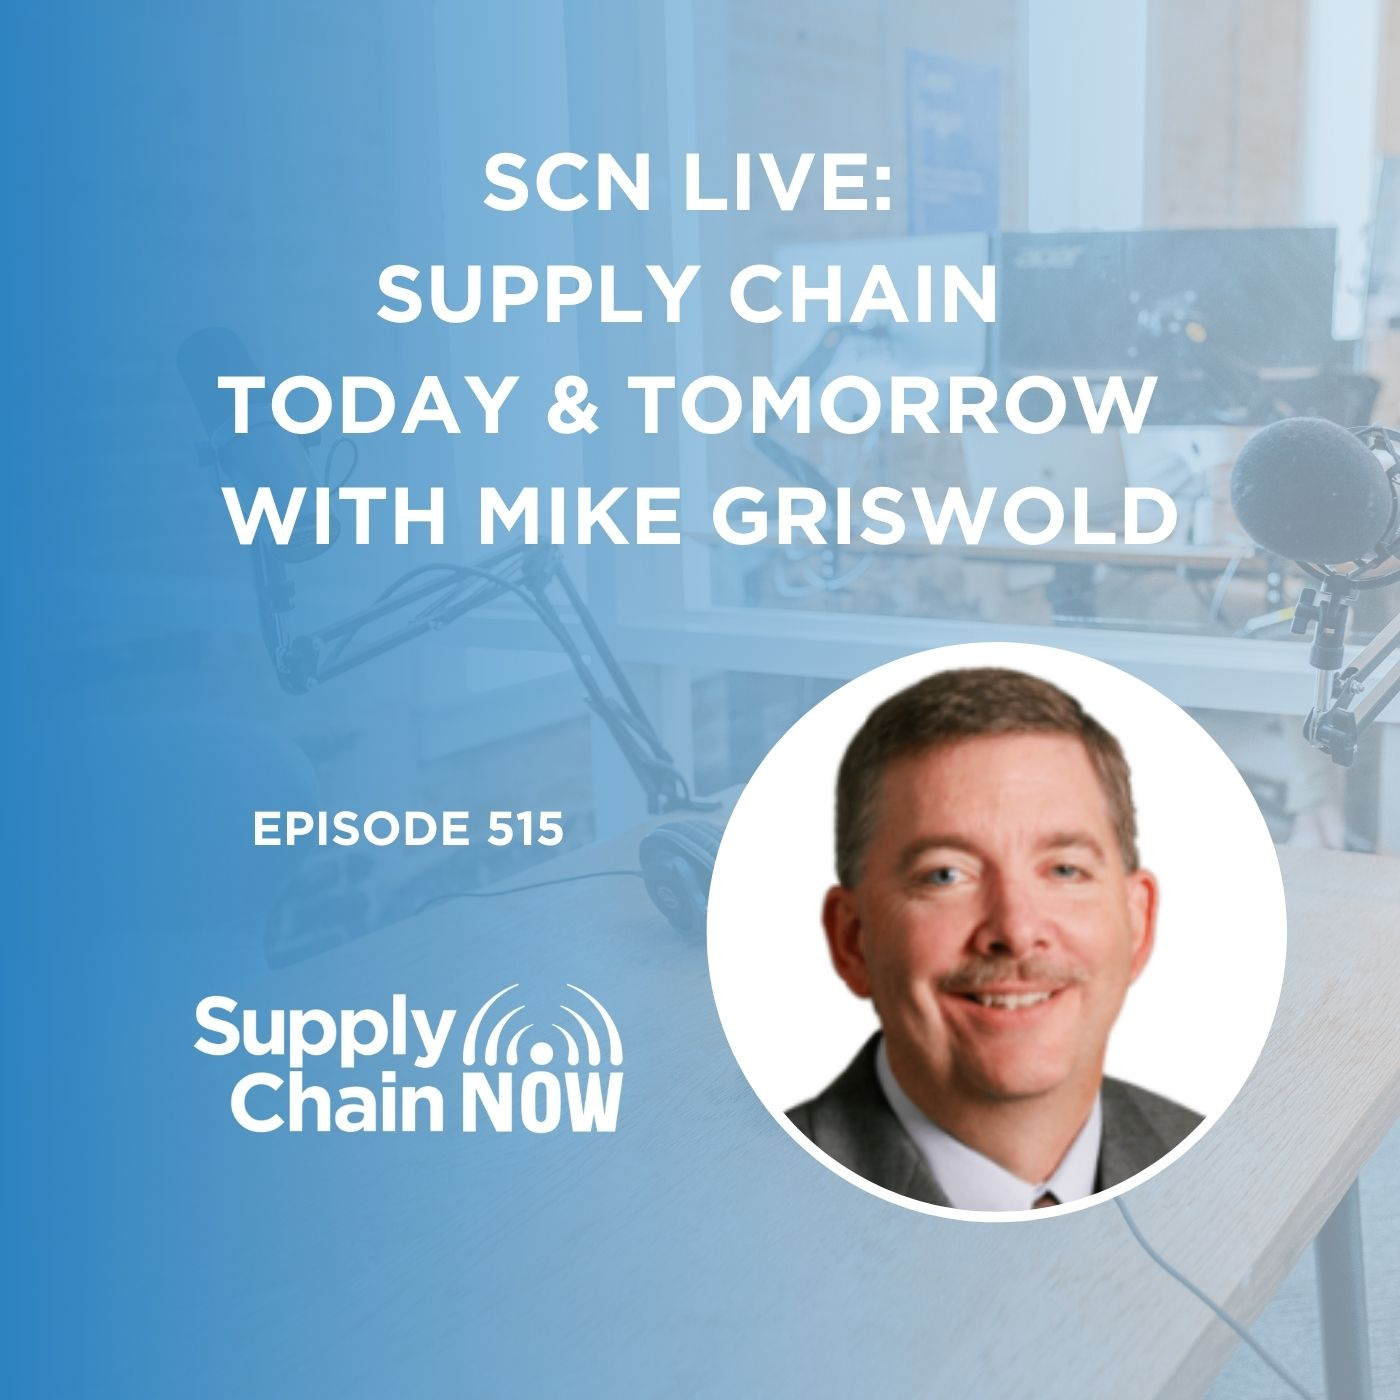 SCN Live: Supply Chain Today & Tomorrow with Mike Griswold